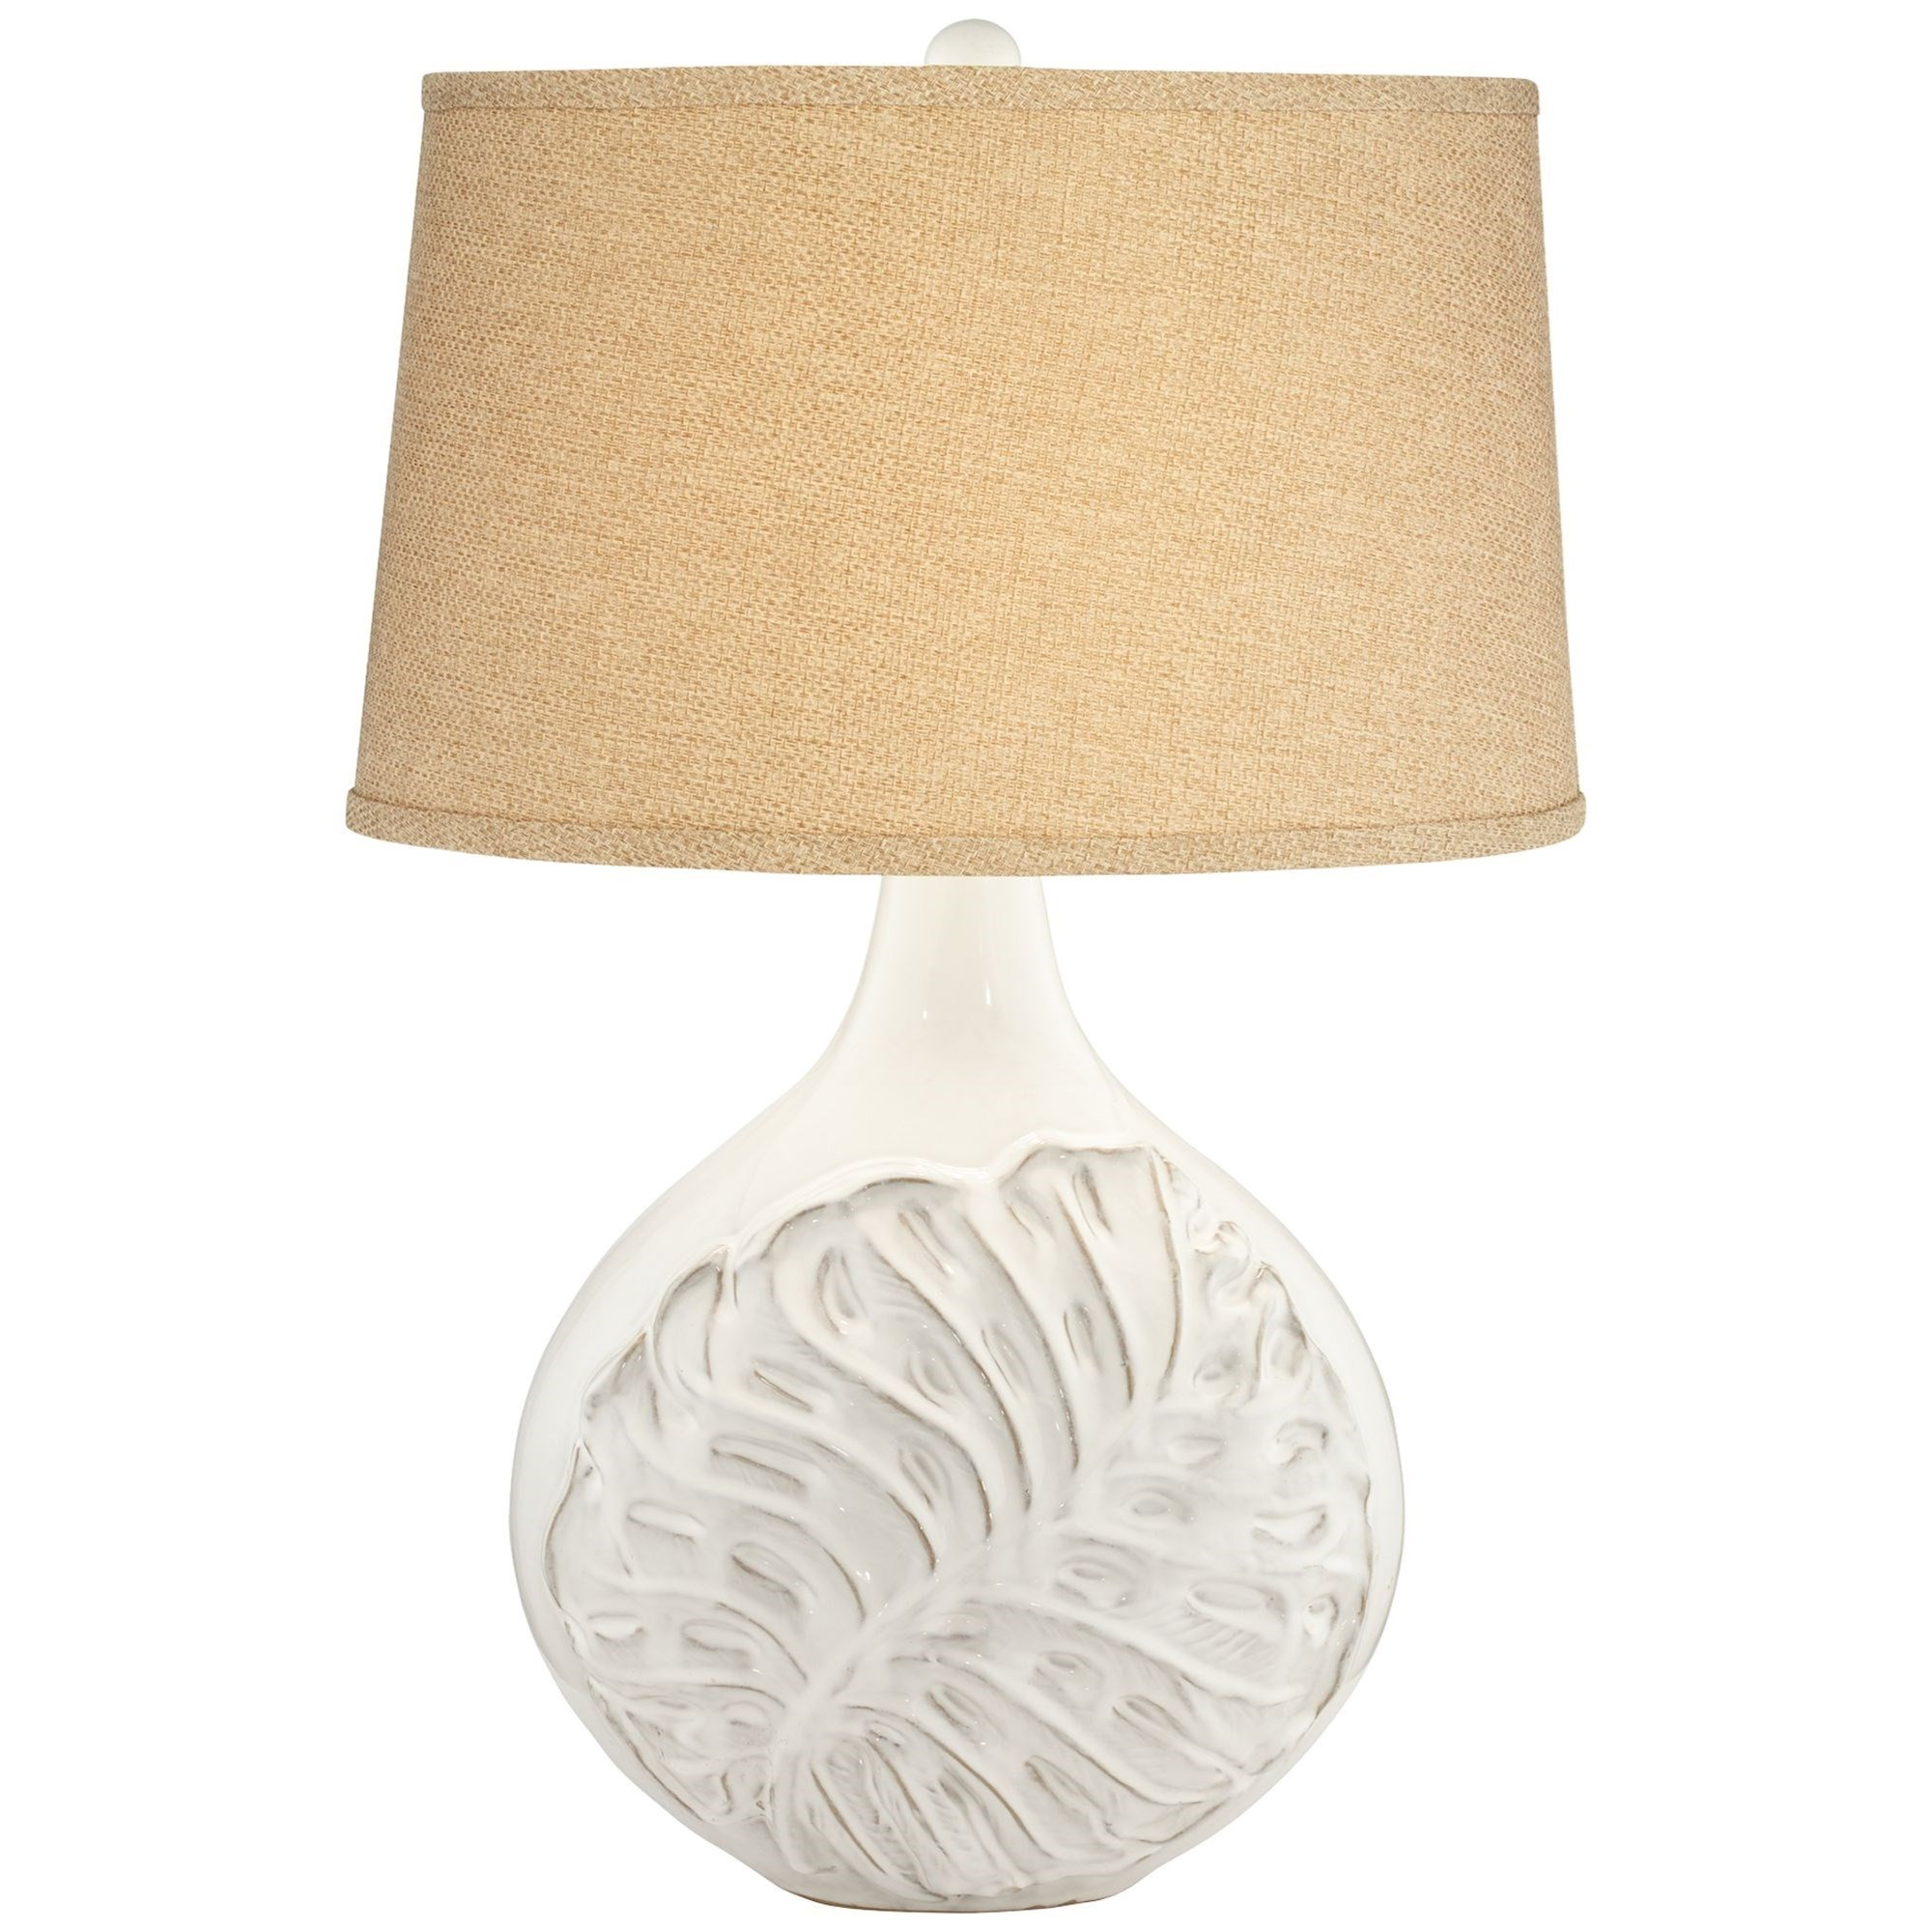 Pacific Coast Lighting Table LampsPalmier Collection Table Lamp ...